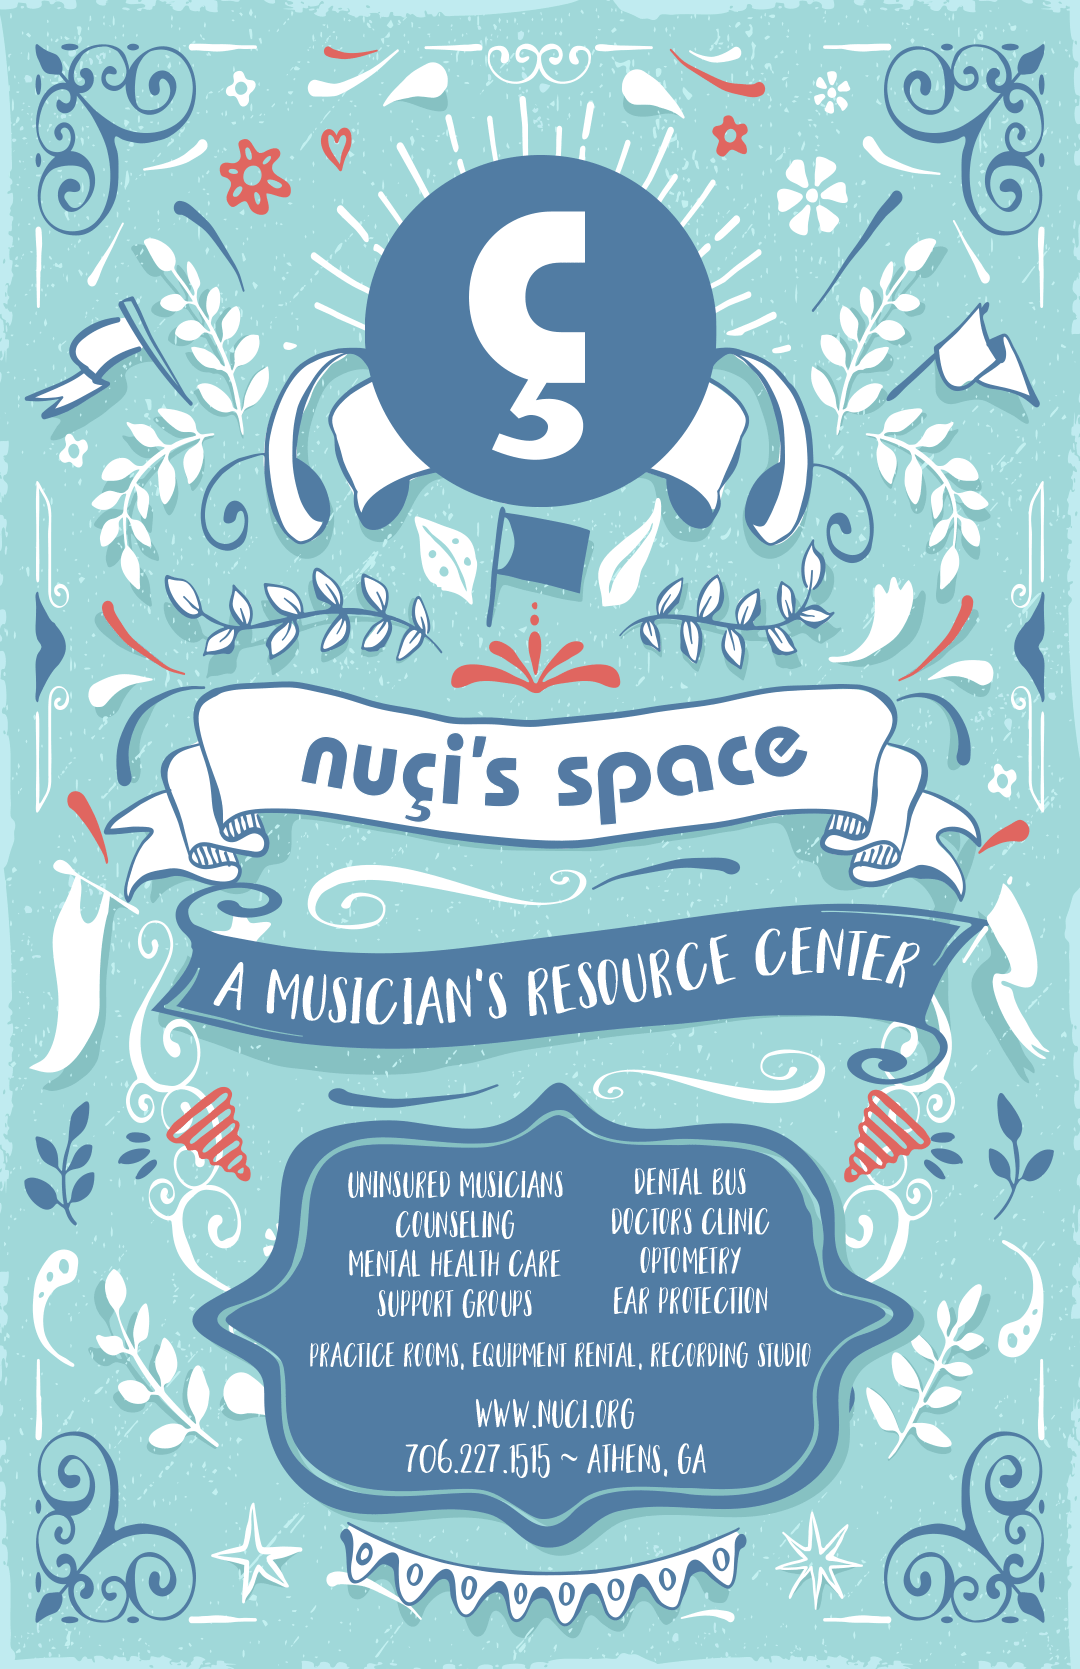 Nuci's Space Green Room Poster